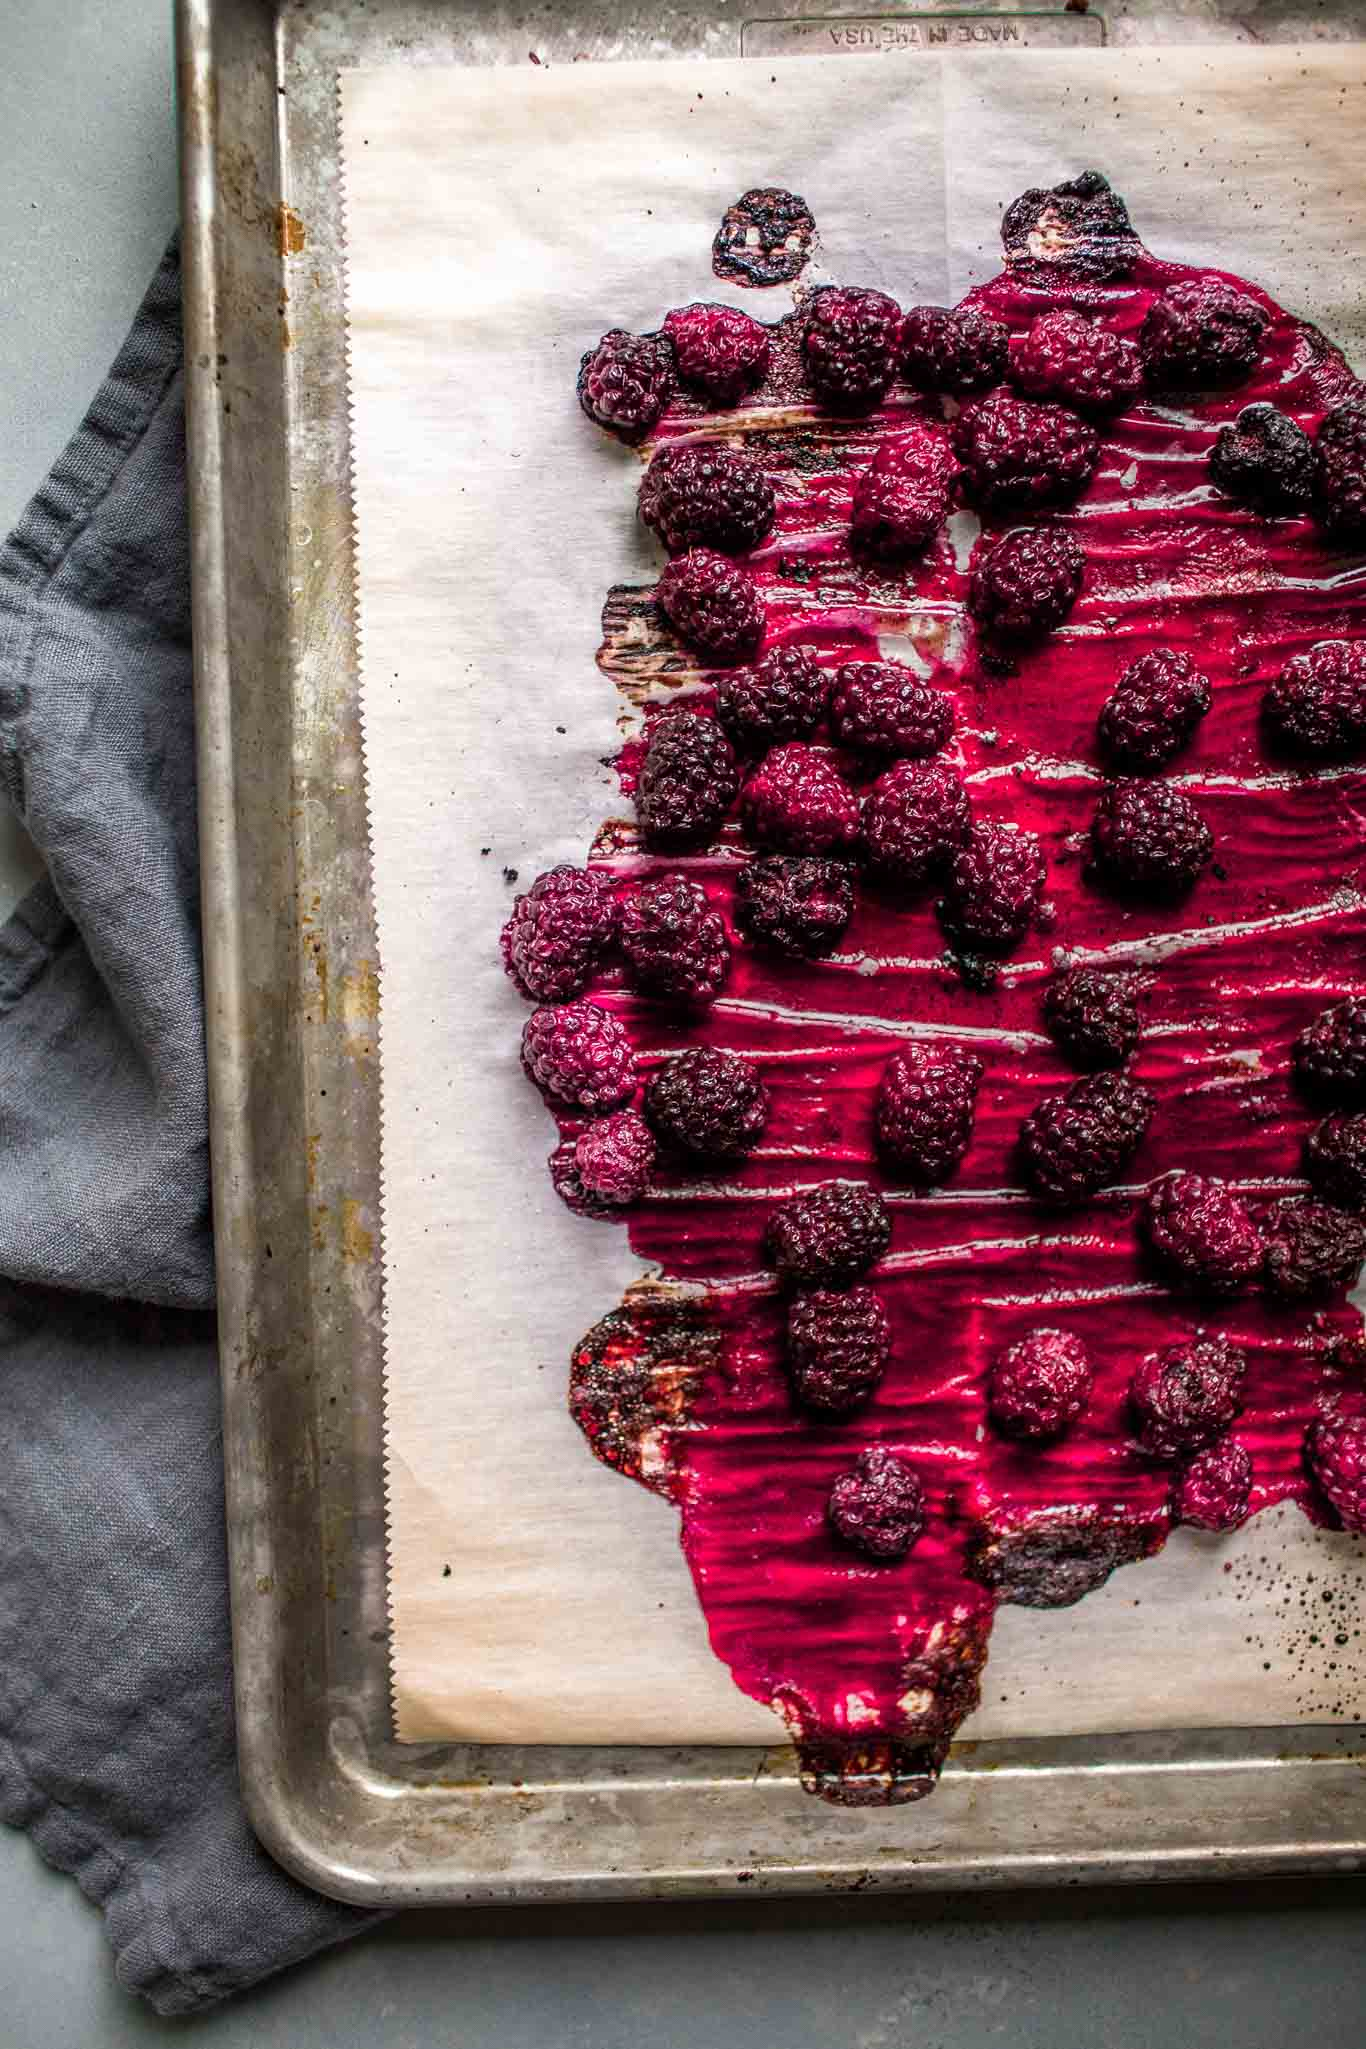 Roasted blackberries on baking sheet.